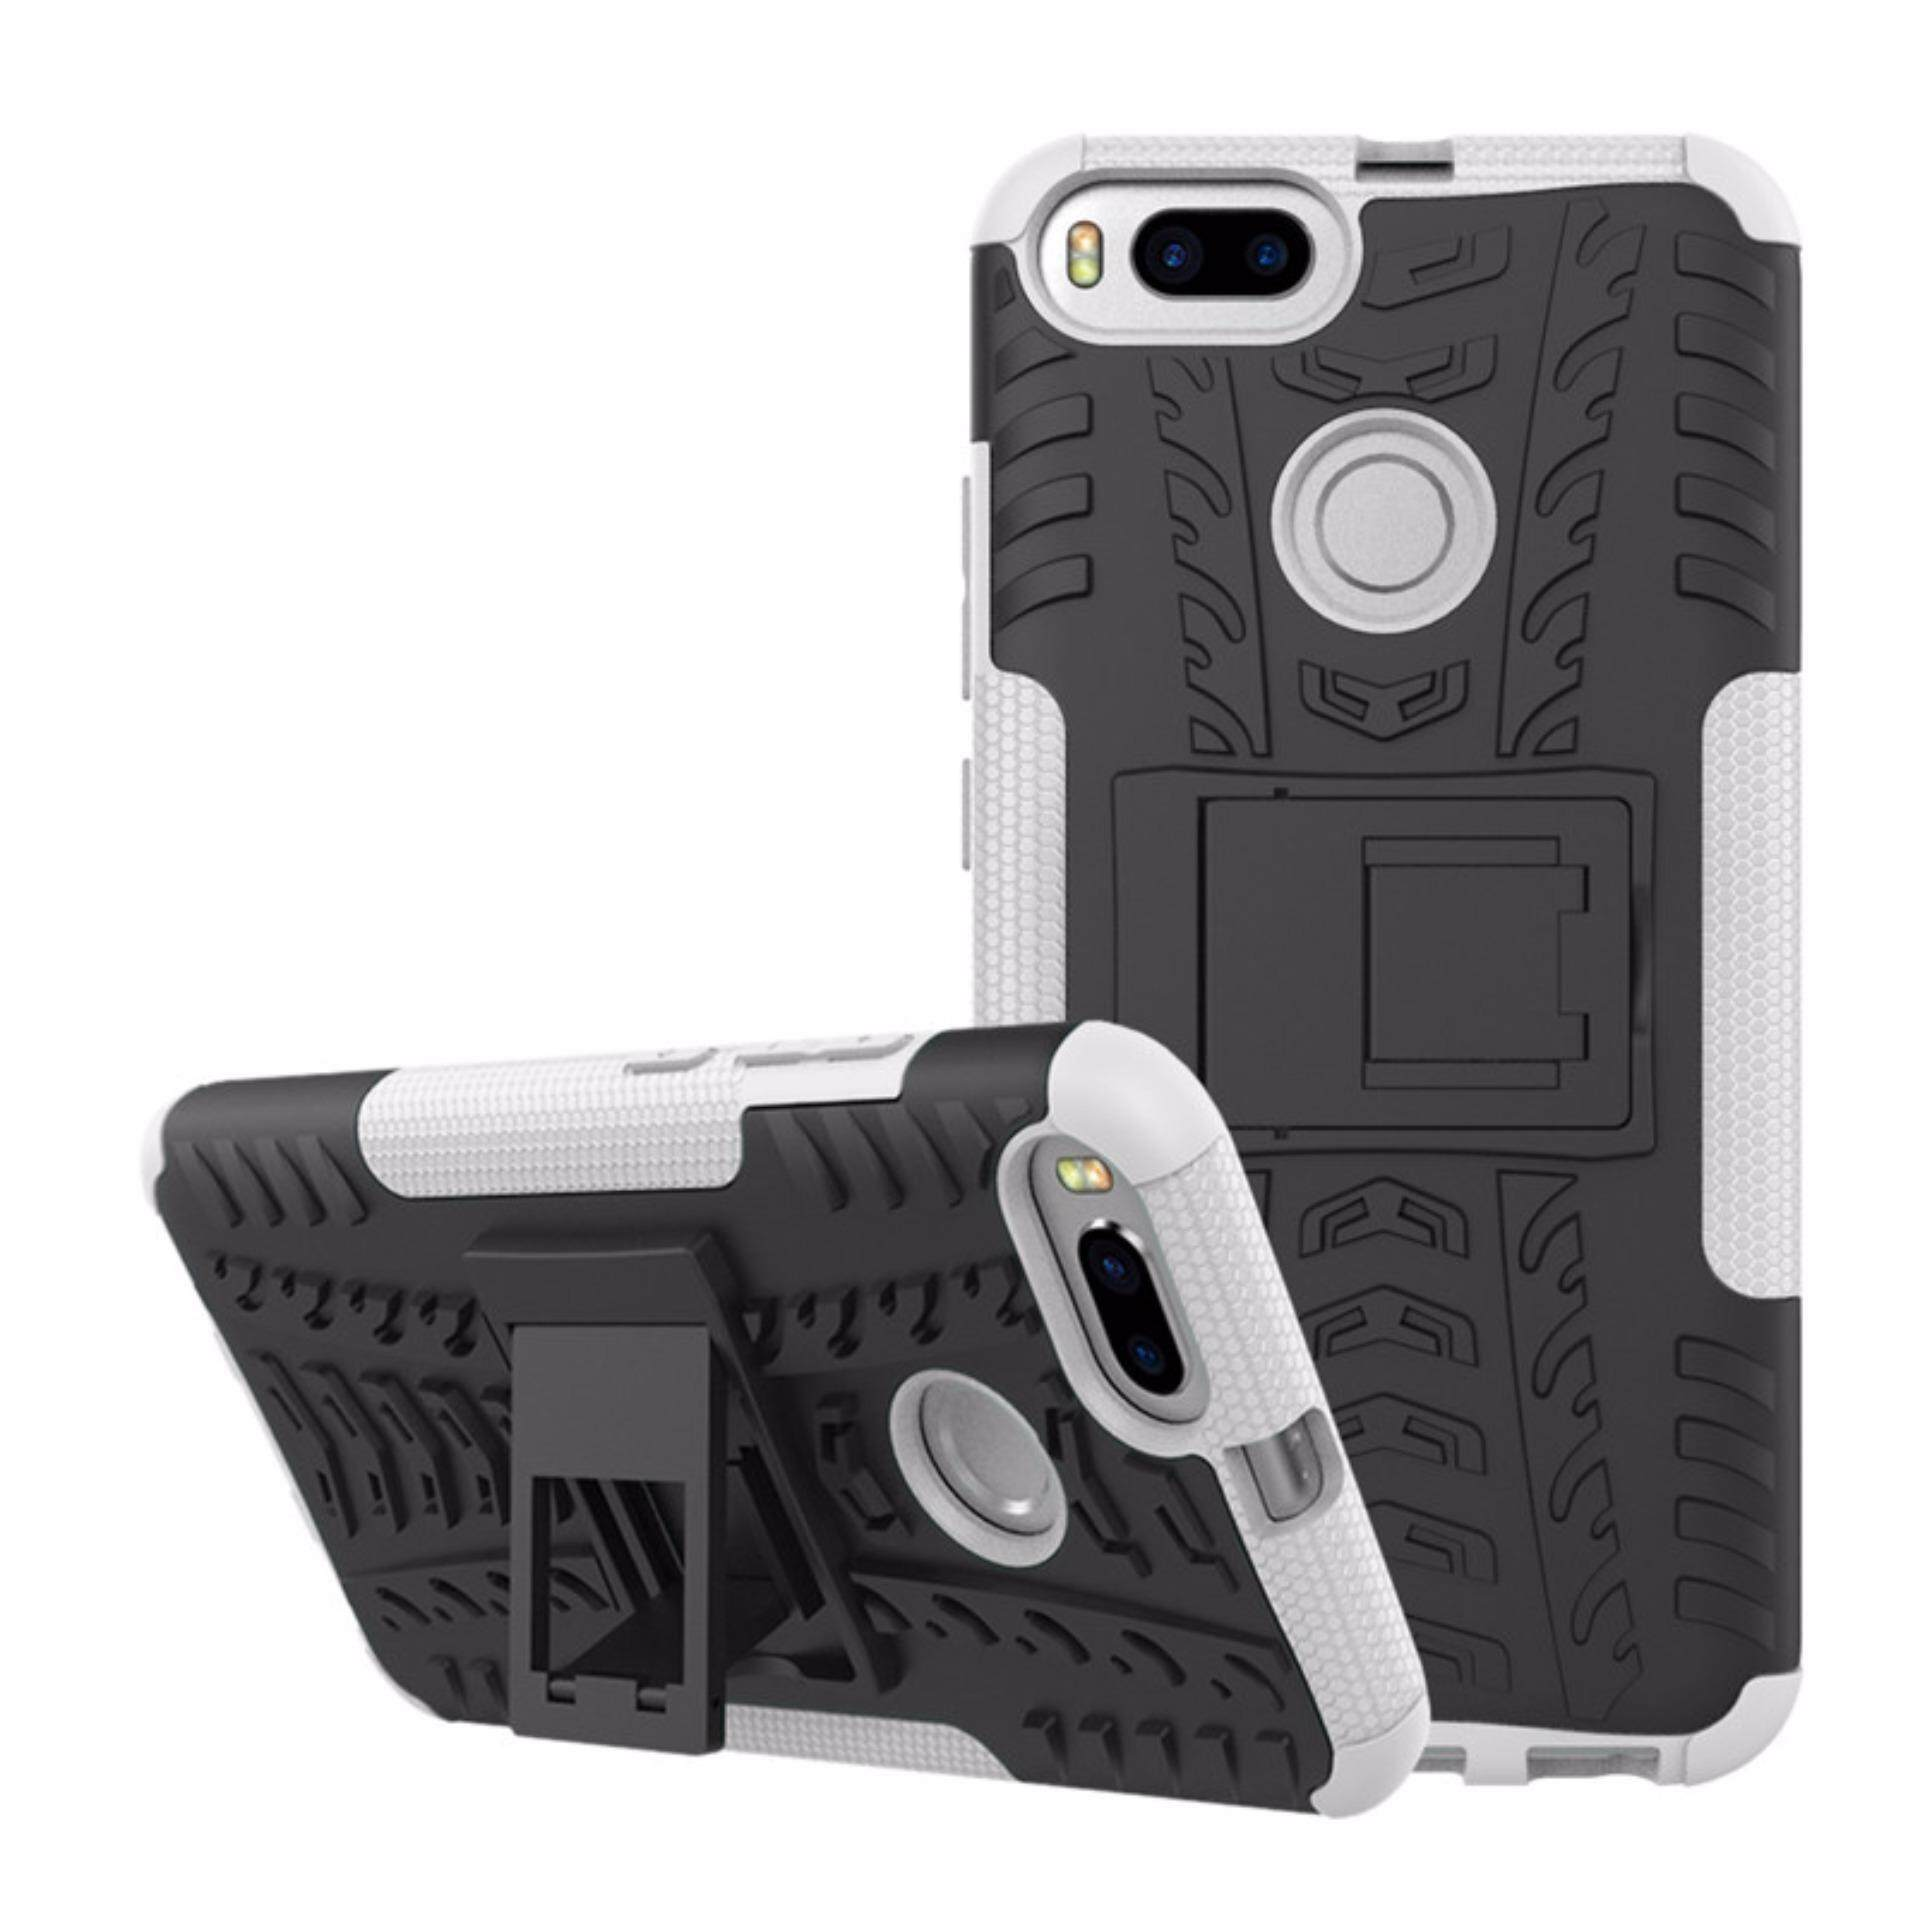 Xiaomi Redmi 1s Backdoor Backcover Case Casing Tutup Belakang White Back Door Note 2 Note2 Cover Popo Ball Rugged Armor Dazzle For Mi A1 5x